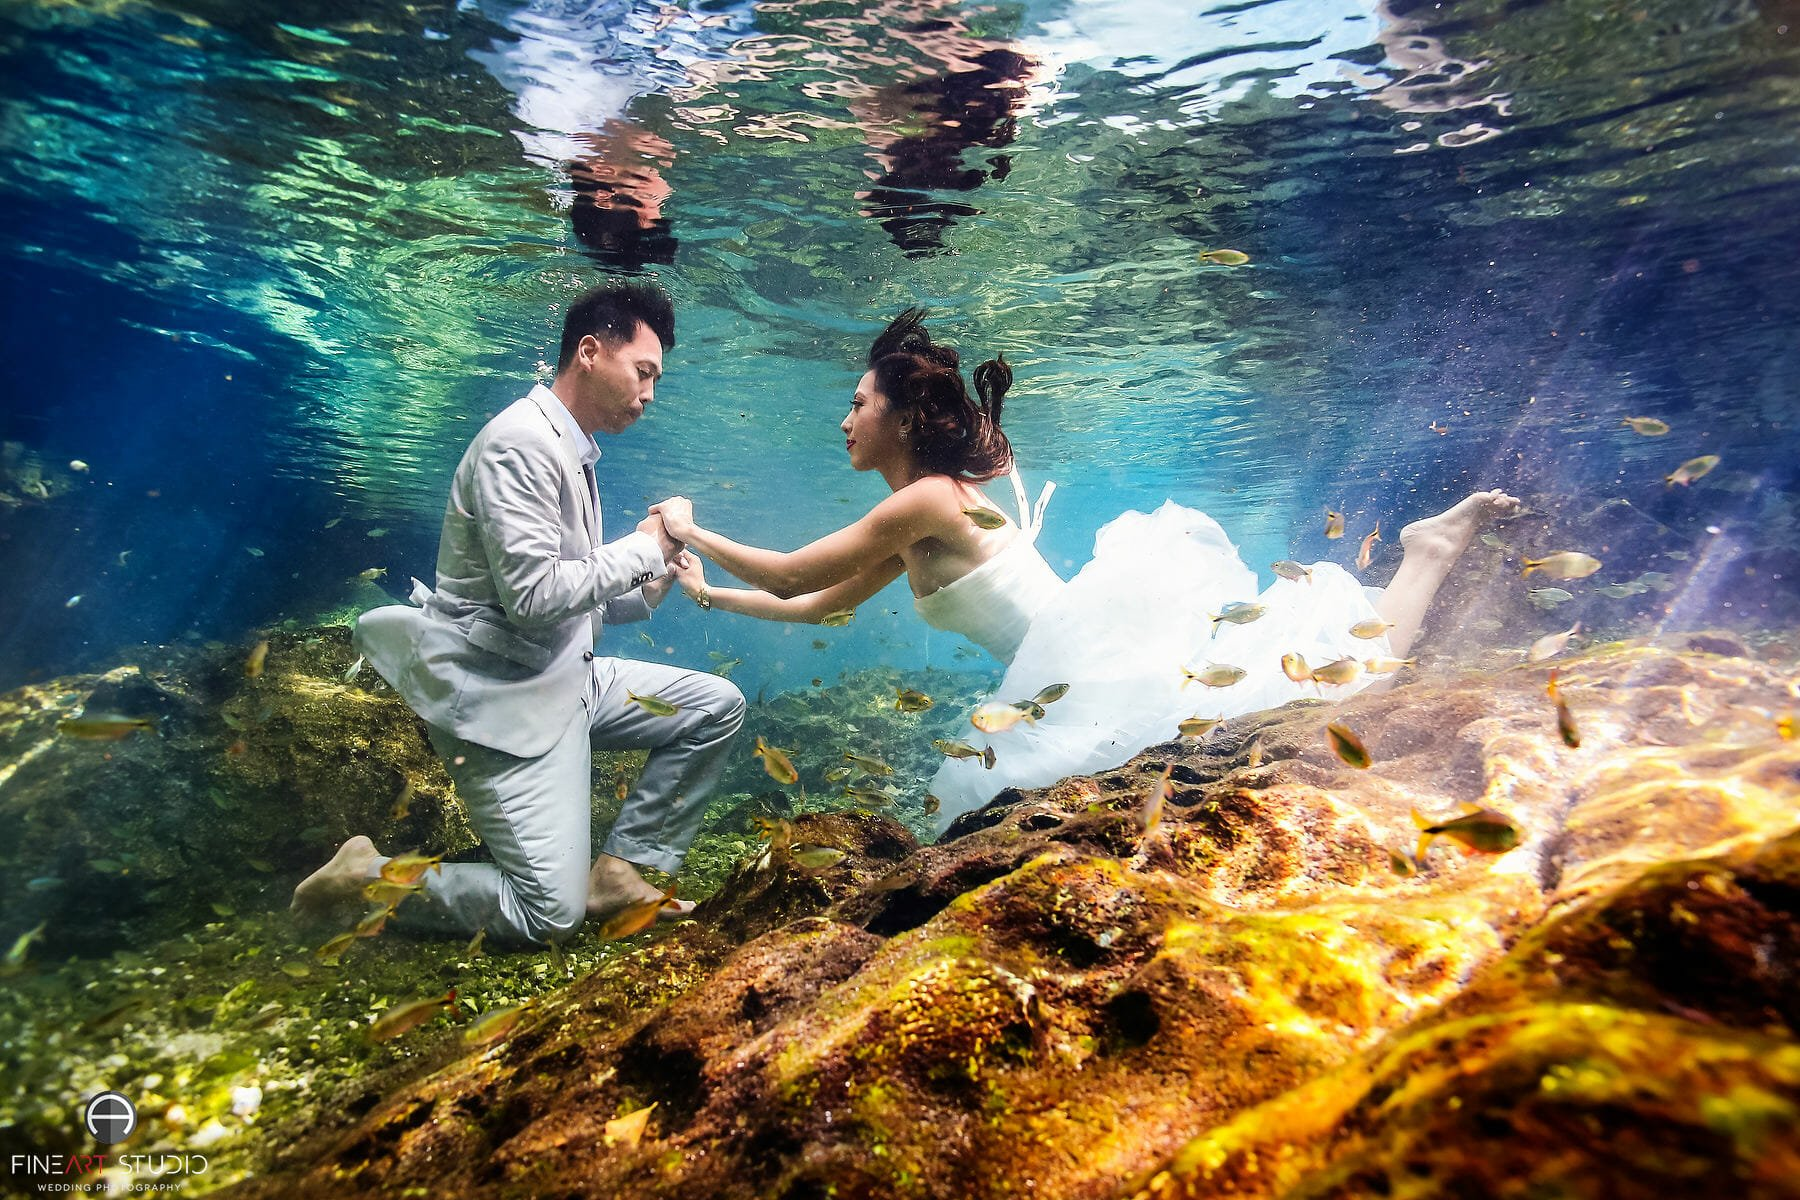 Underwater Trash the Dress Photography Cancun Mexico - FineArt Studio